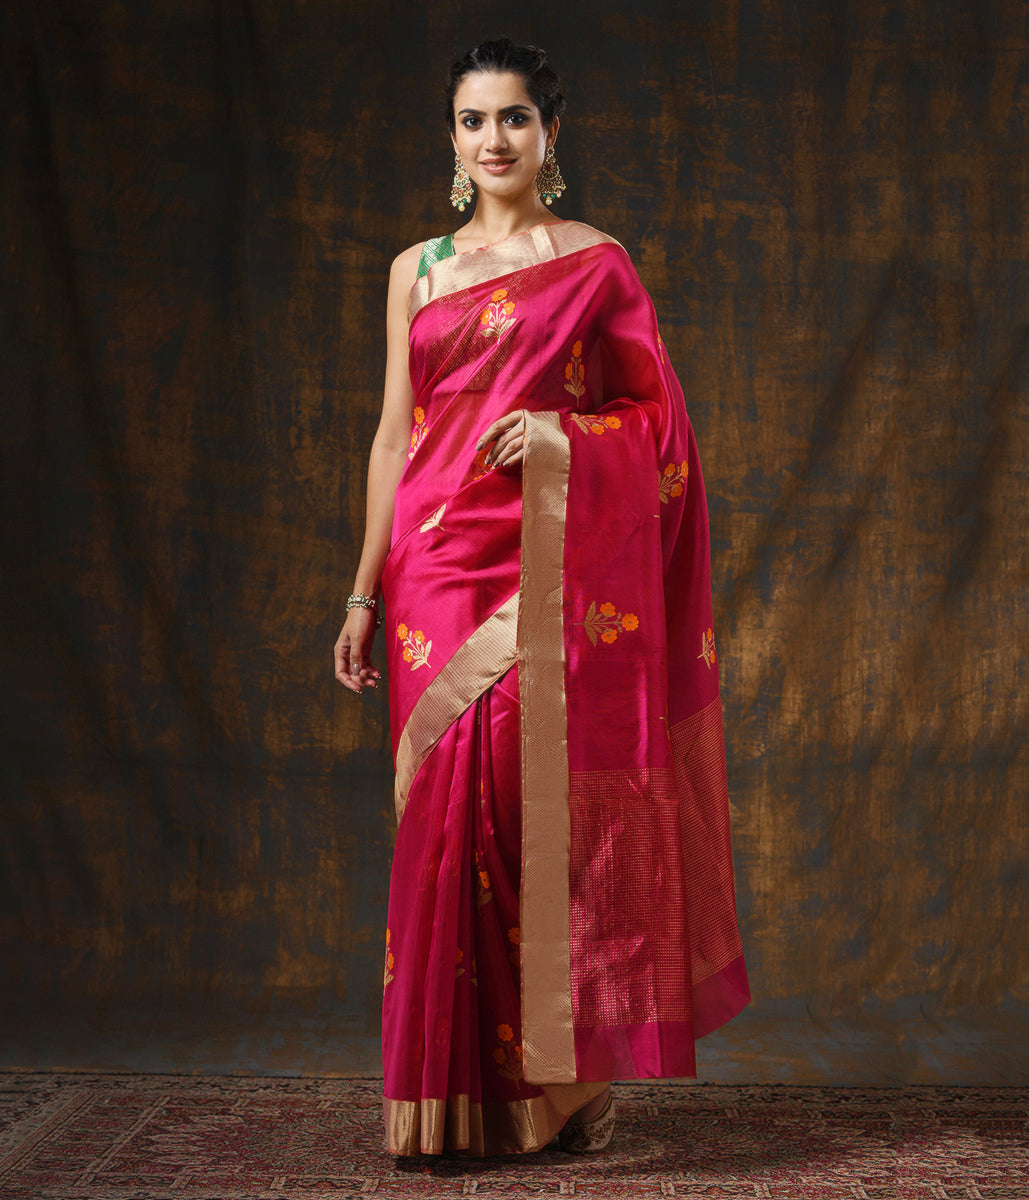 Handwoven Pink Chanderi Silk Saree with Floral Motifs And Heavy Gold Zari Border